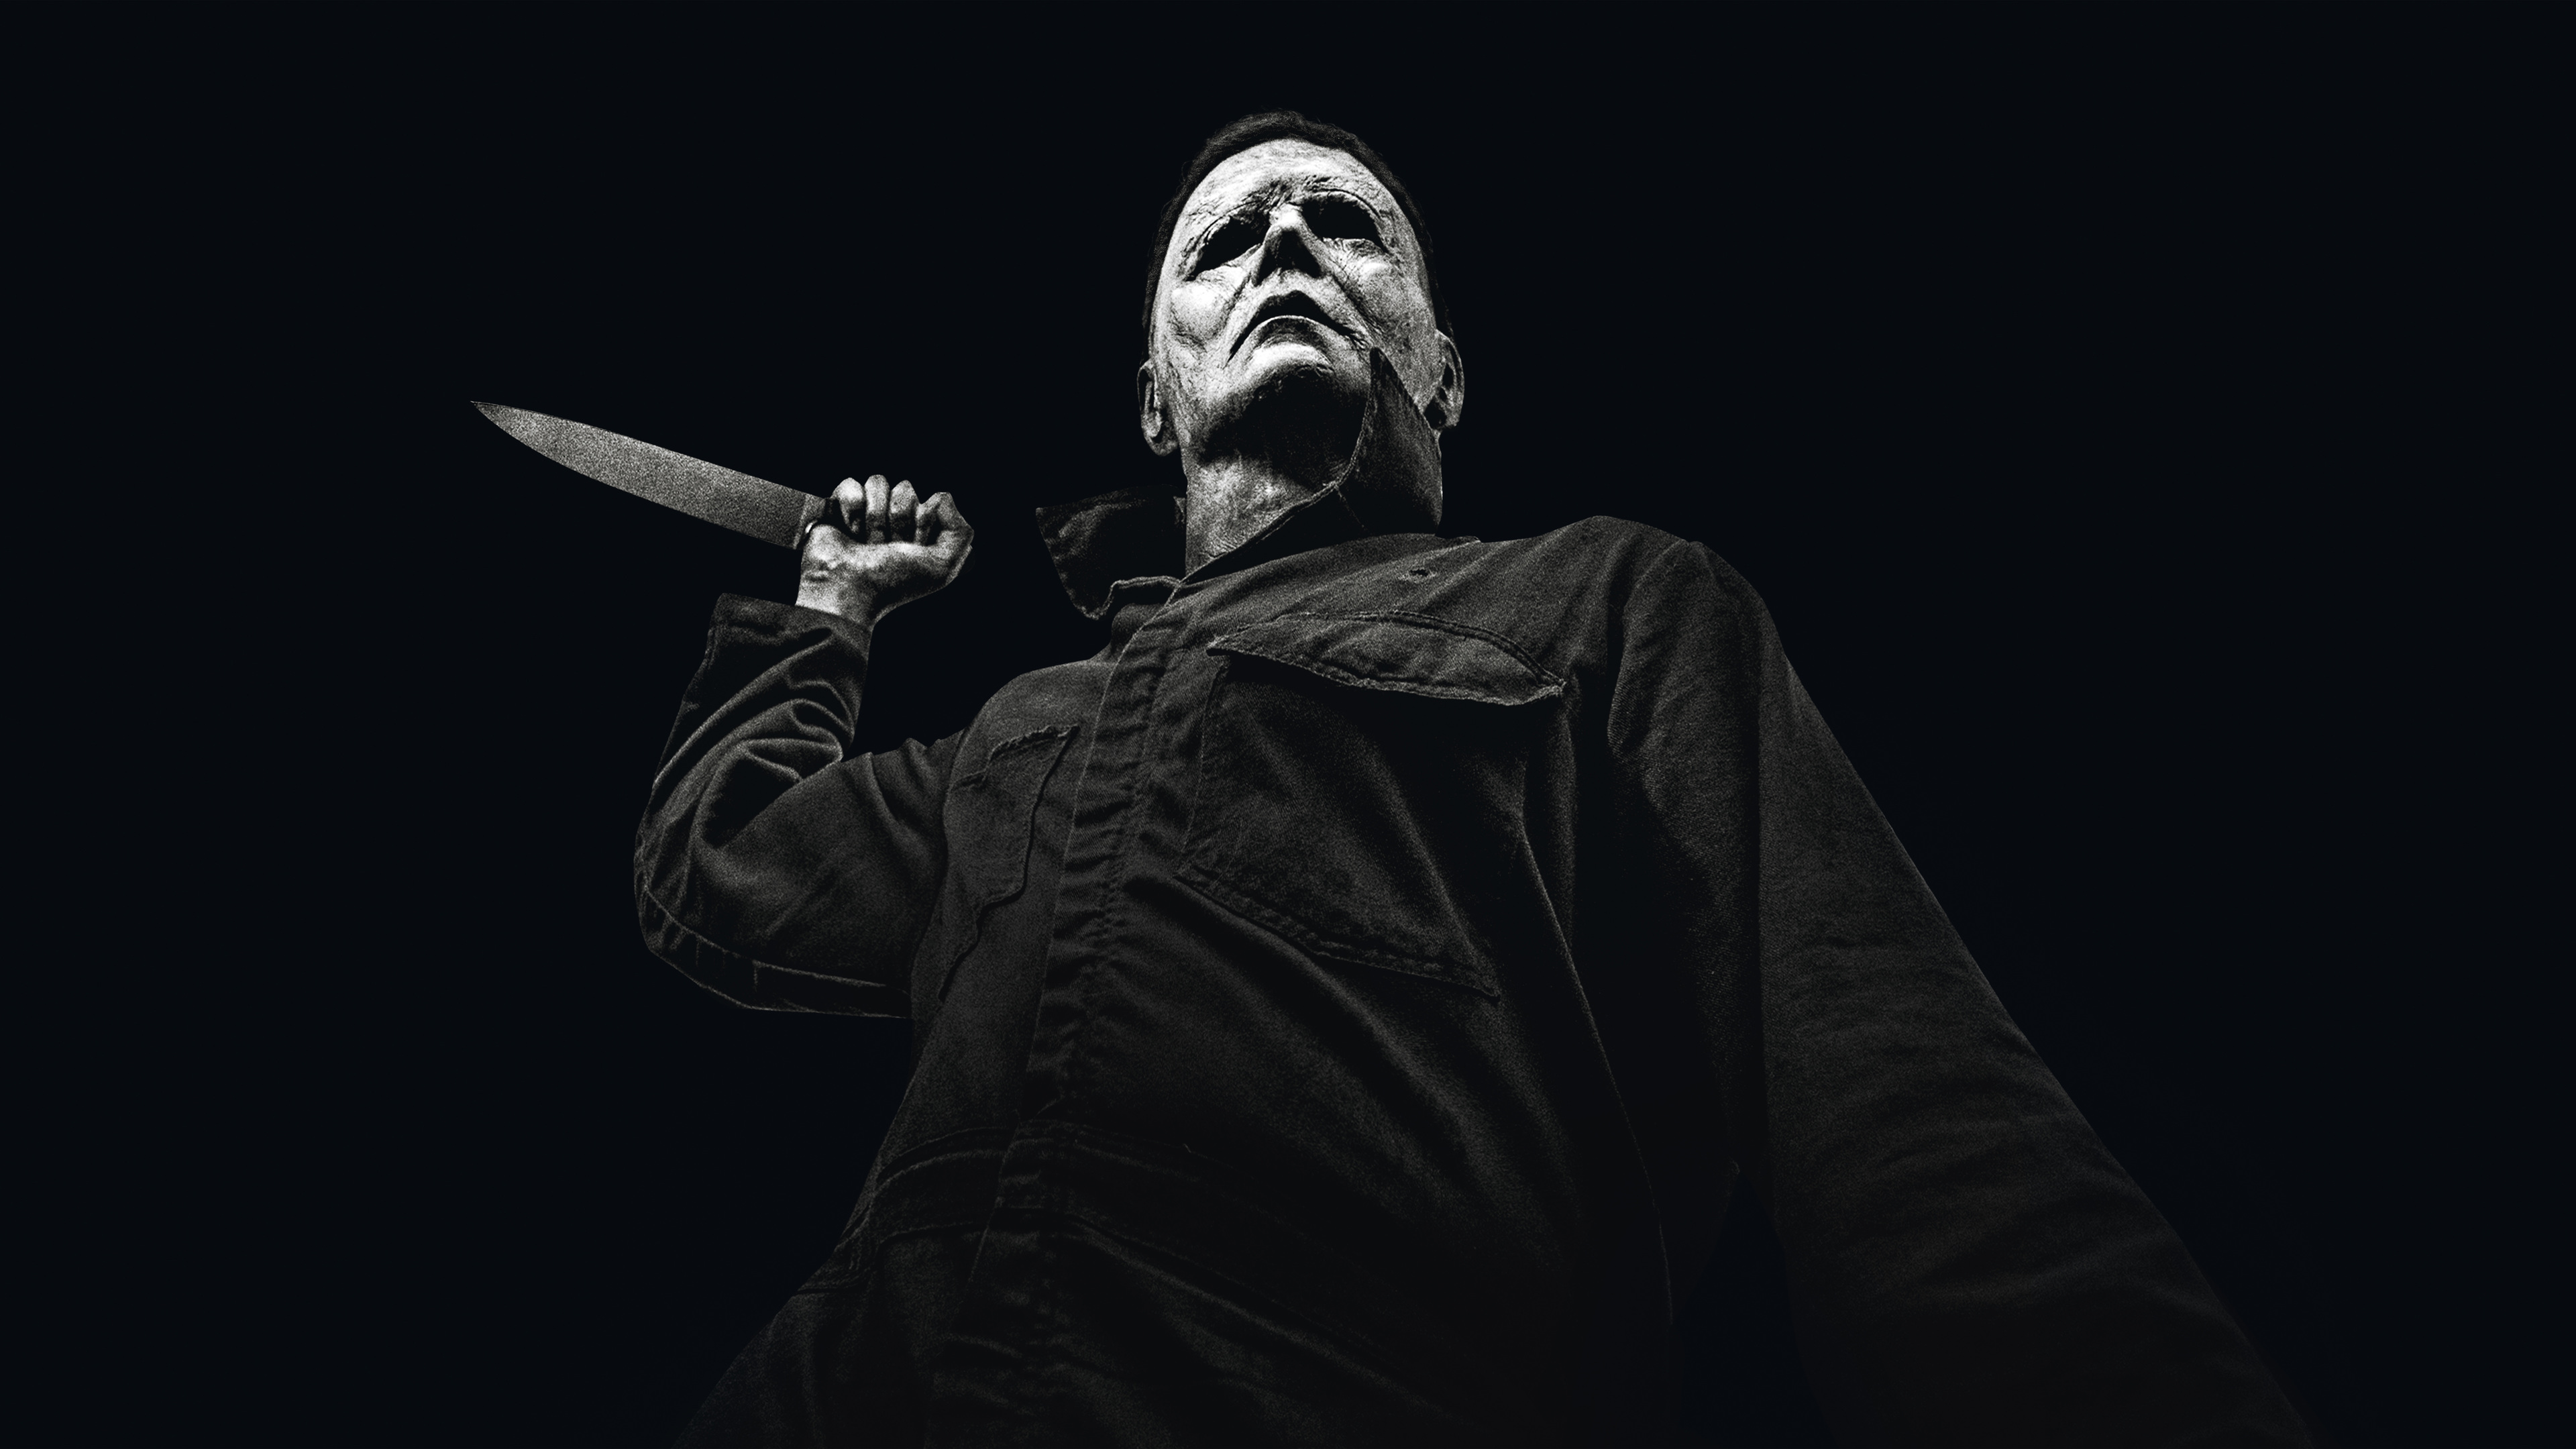 halloween movie 12k 1537644272 - Halloween Movie 12k - movies wallpapers, monochrome wallpapers, hd-wallpapers, halloween wallpapers, halloween movie wallpapers, black and white wallpapers, 8k wallpapers, 5k wallpapers, 4k-wallpapers, 2018-movies-wallpapers, 12k wallpapers, 10k wallpapers